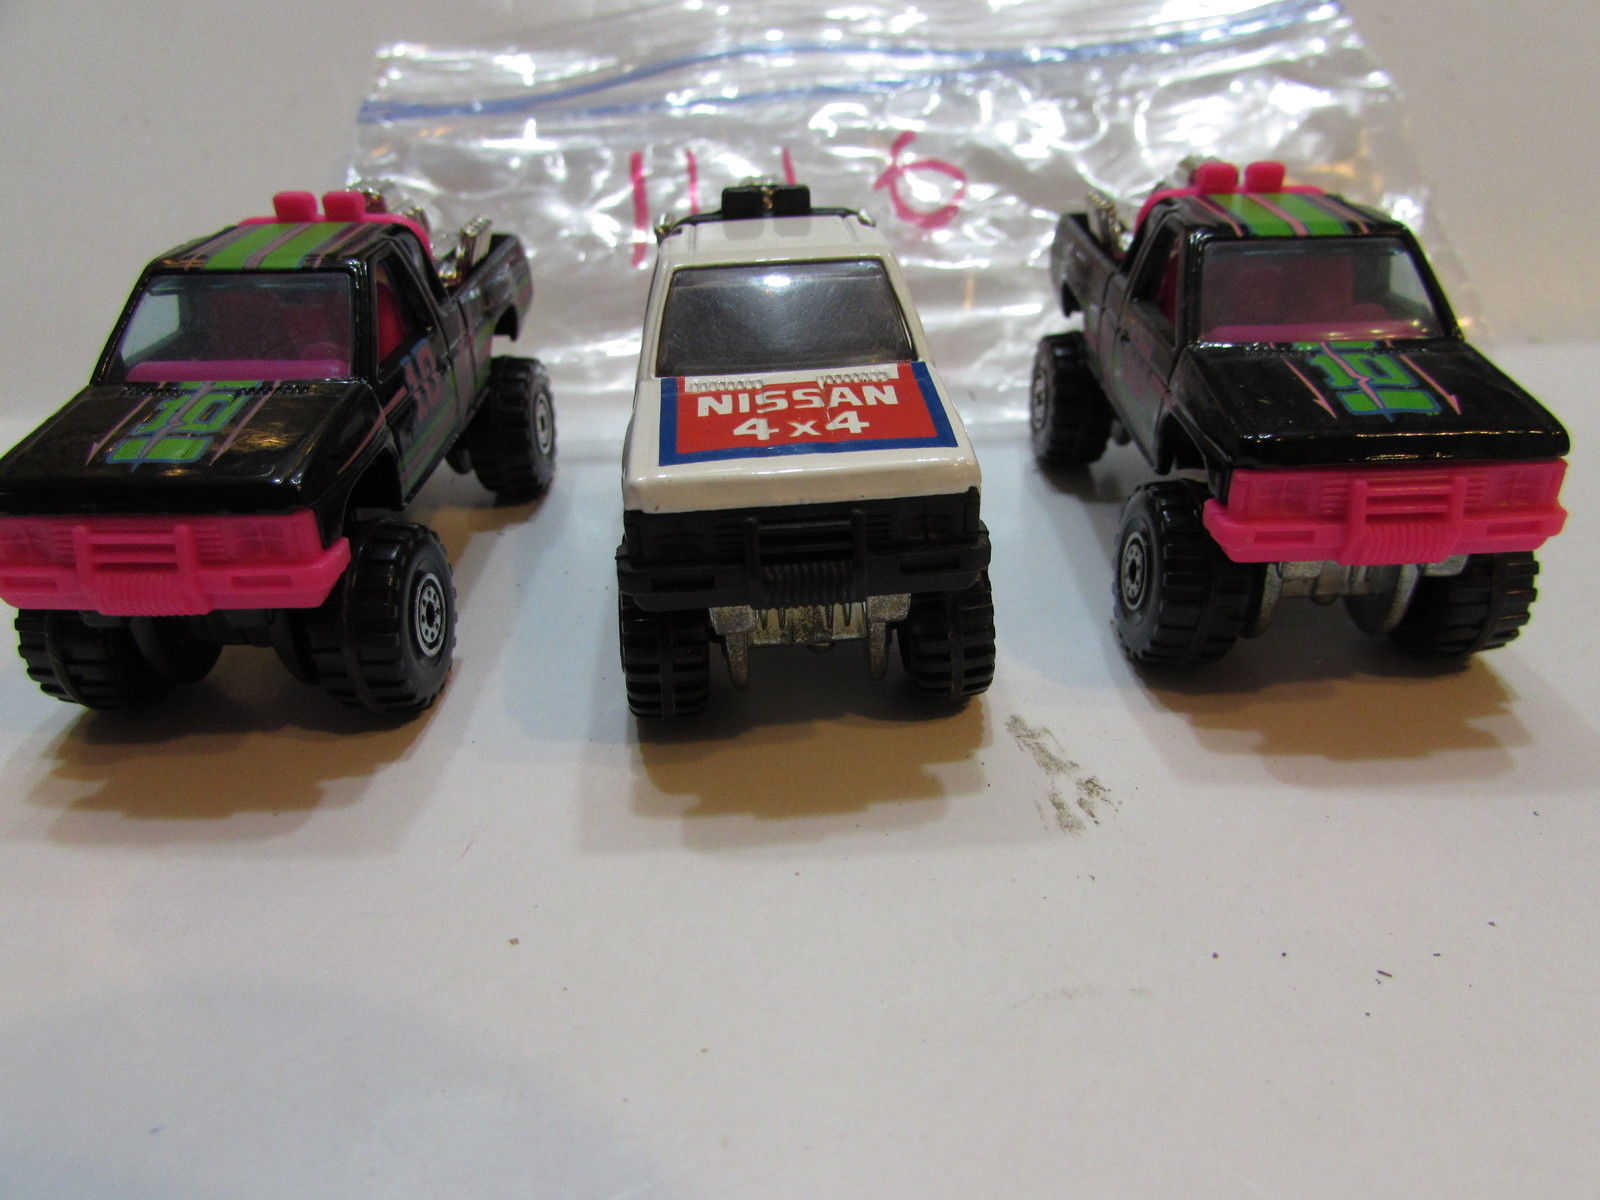 HOT WHEELS LOT OF 3 NISSAN HARD BODY 4X4 WHITE - BLACK LOOSE 1987 MALAYSIA BASE